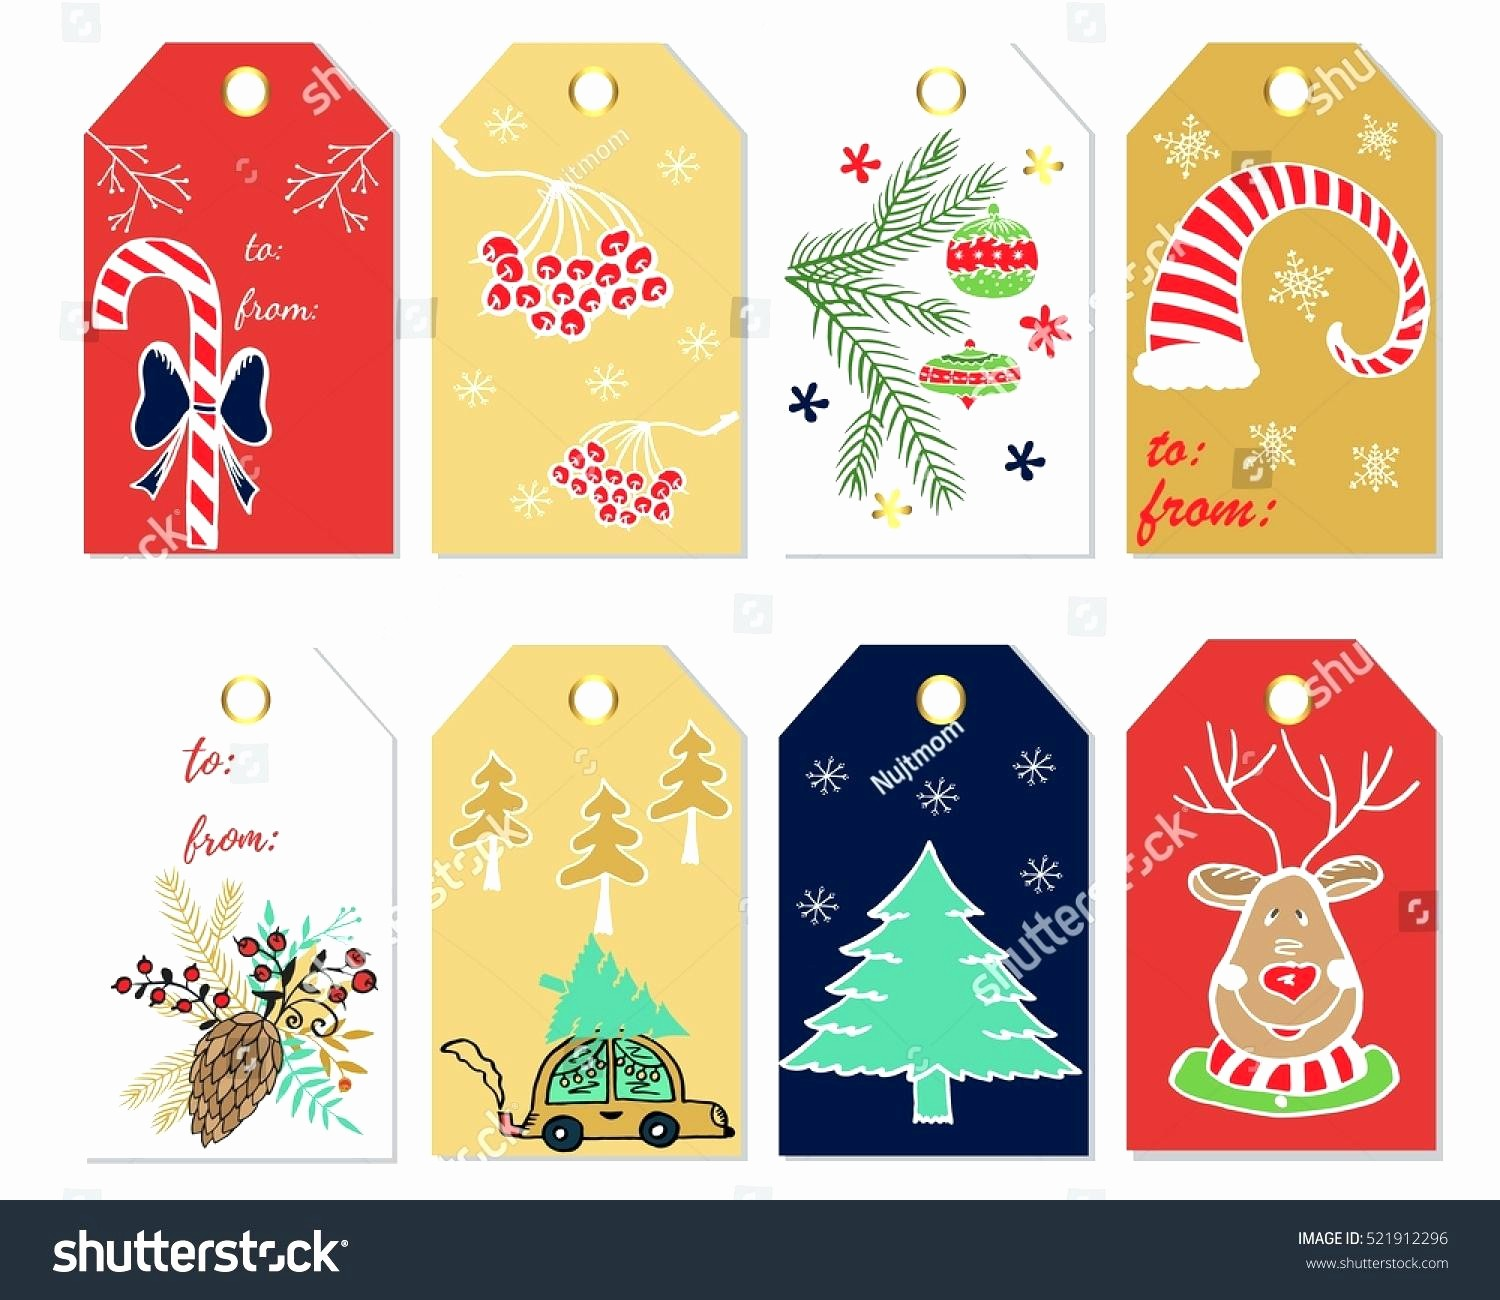 Christmas Tag Templates Microsoft Word Best Of Template Christmas Gift Label Template Little to You Free